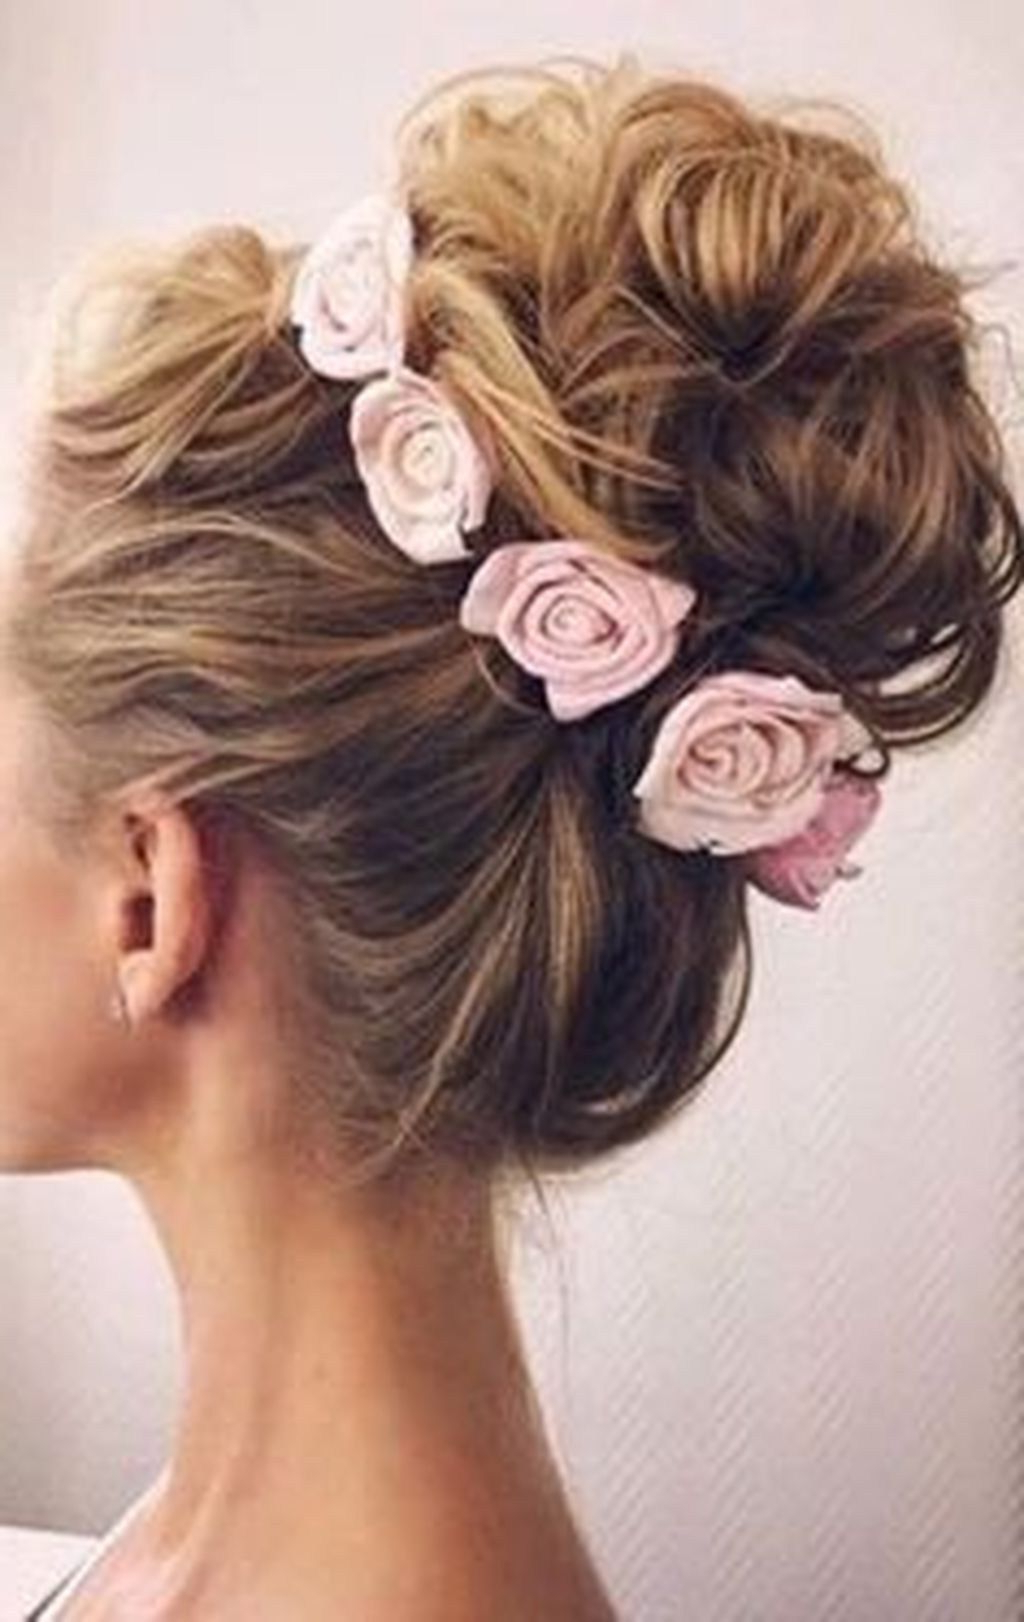 51 Amazing Wedding Hairstyles For Medium Hair Ideas To Makes You Within 2017 Medium Hairstyles For Bridesmaids (View 3 of 20)